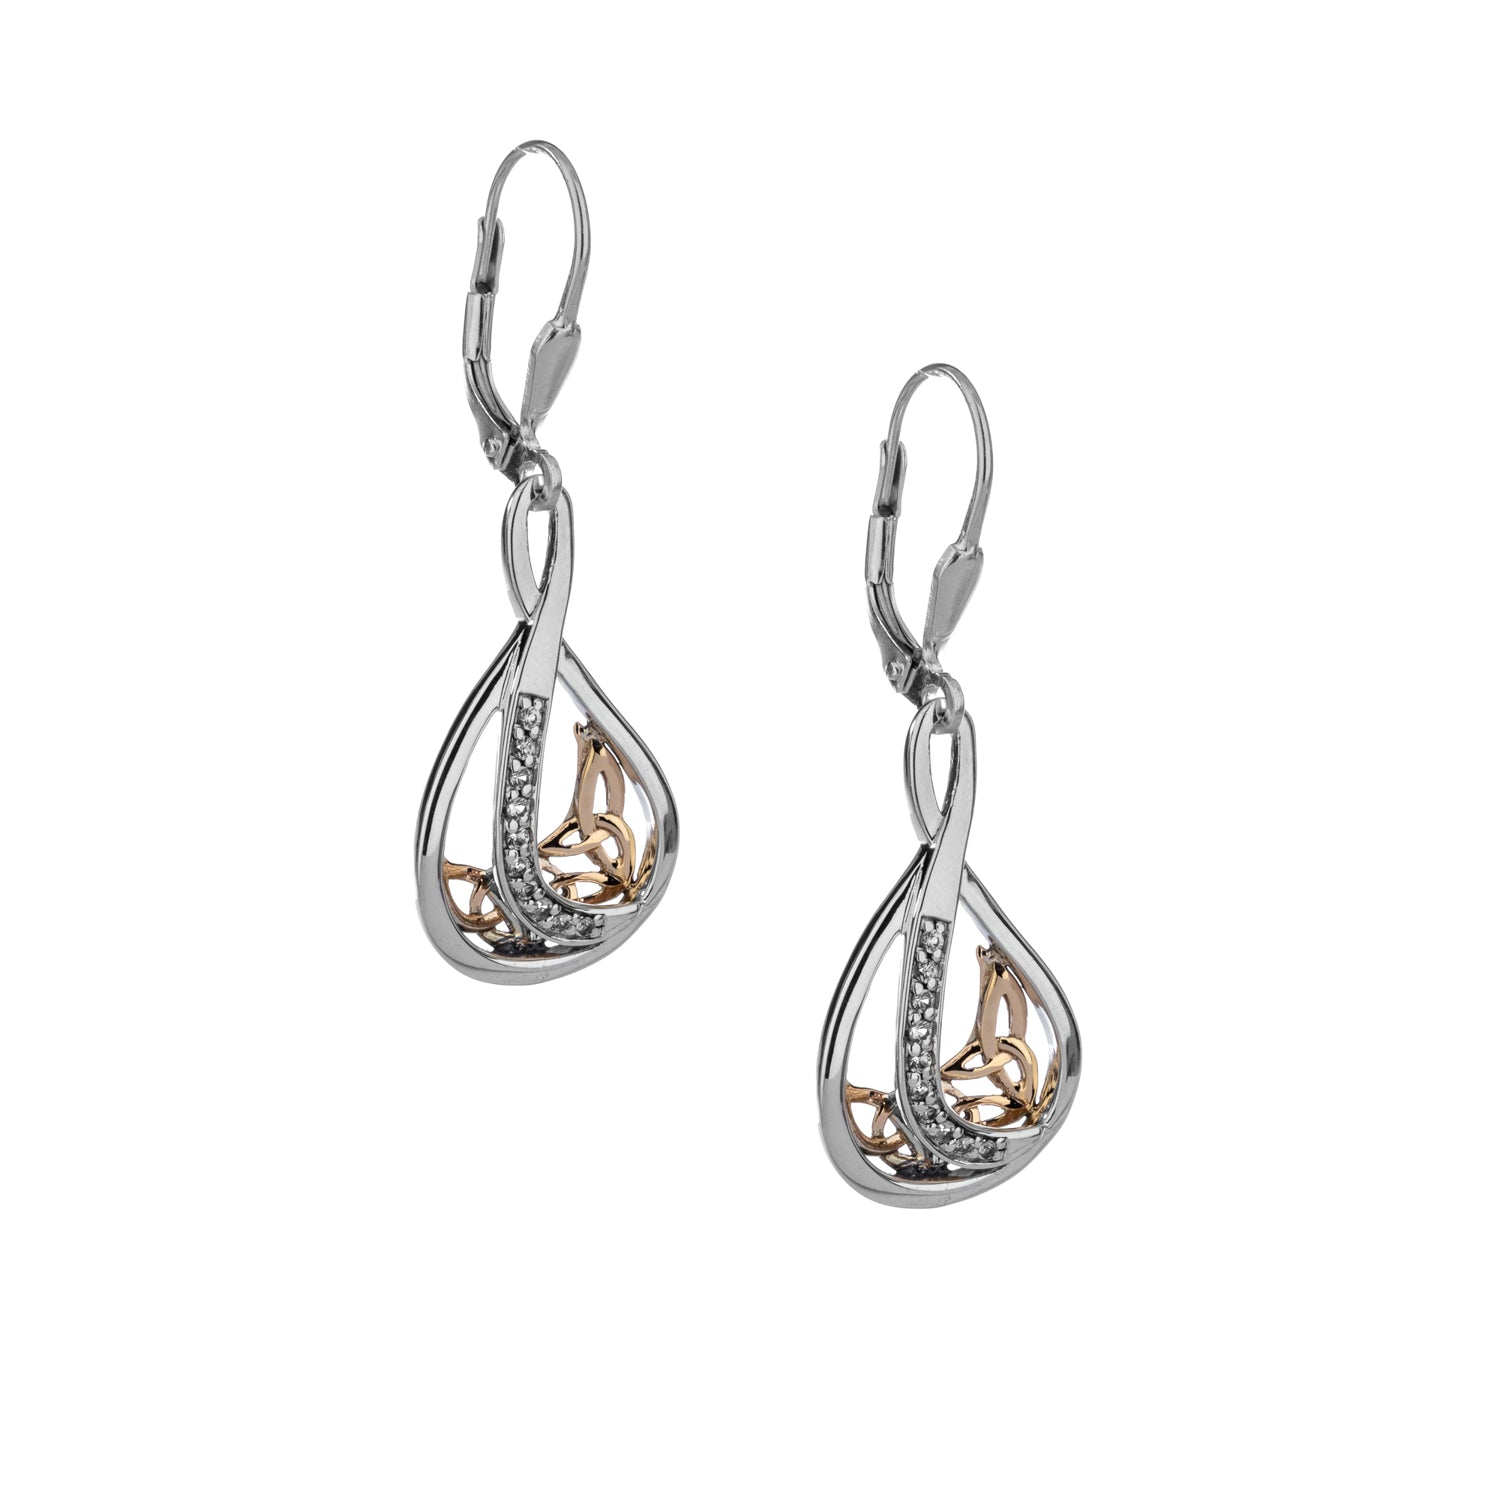 Earrings 10k White Sapphire Trinity Teardrop Leverback Large Earrings from welch and company jewelers near syracuse ny